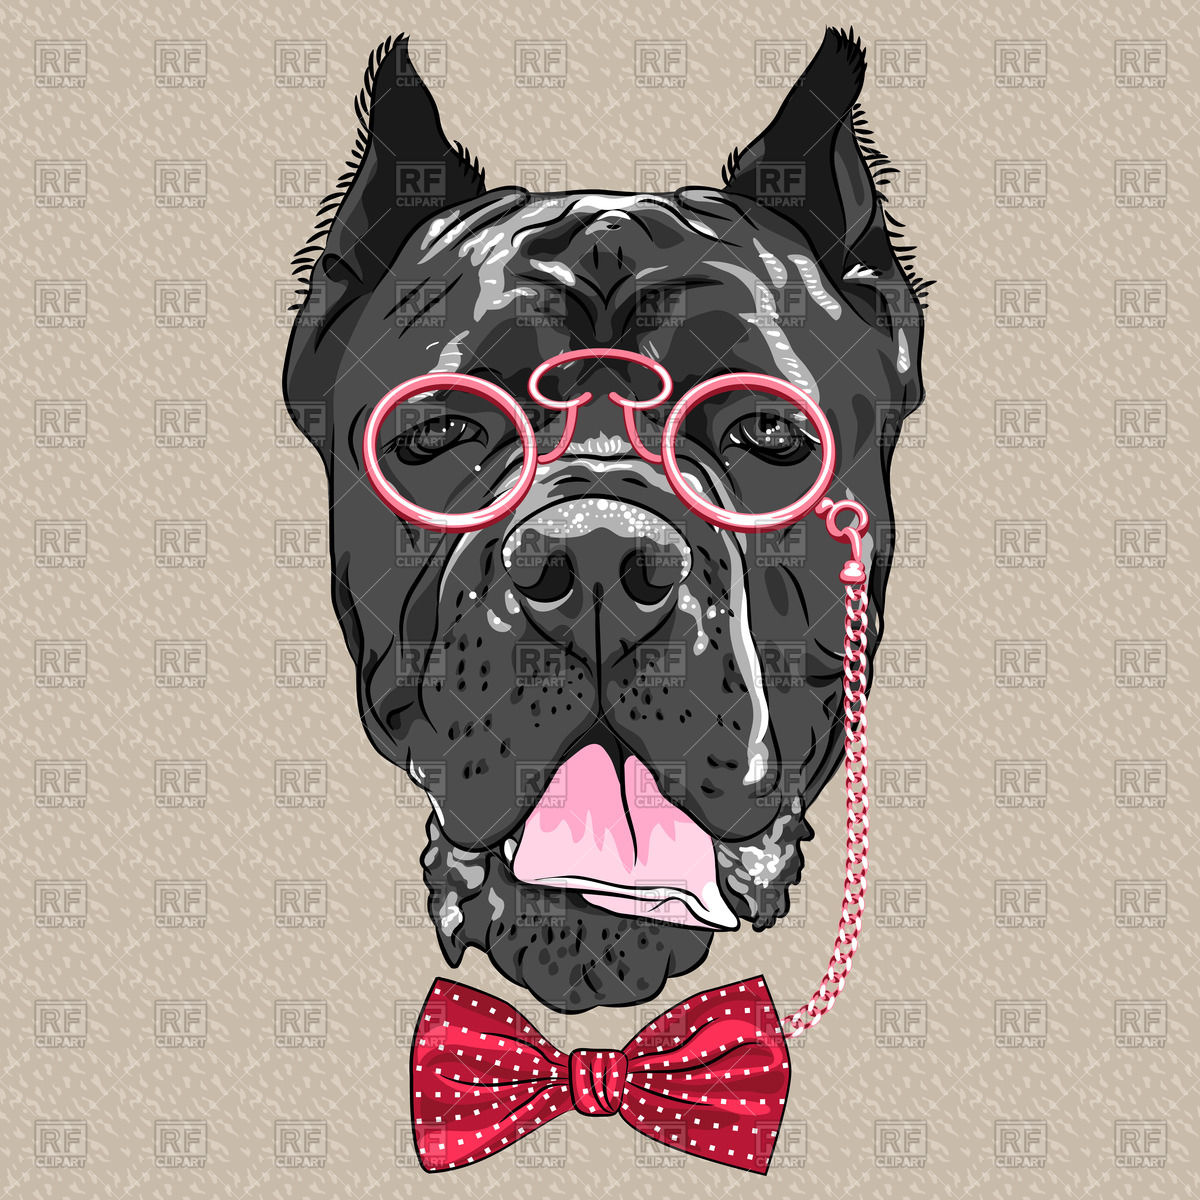 1200x1200 Hipster Dog Of Cane Corso Breed In A Glasses And Bow Tie Vector